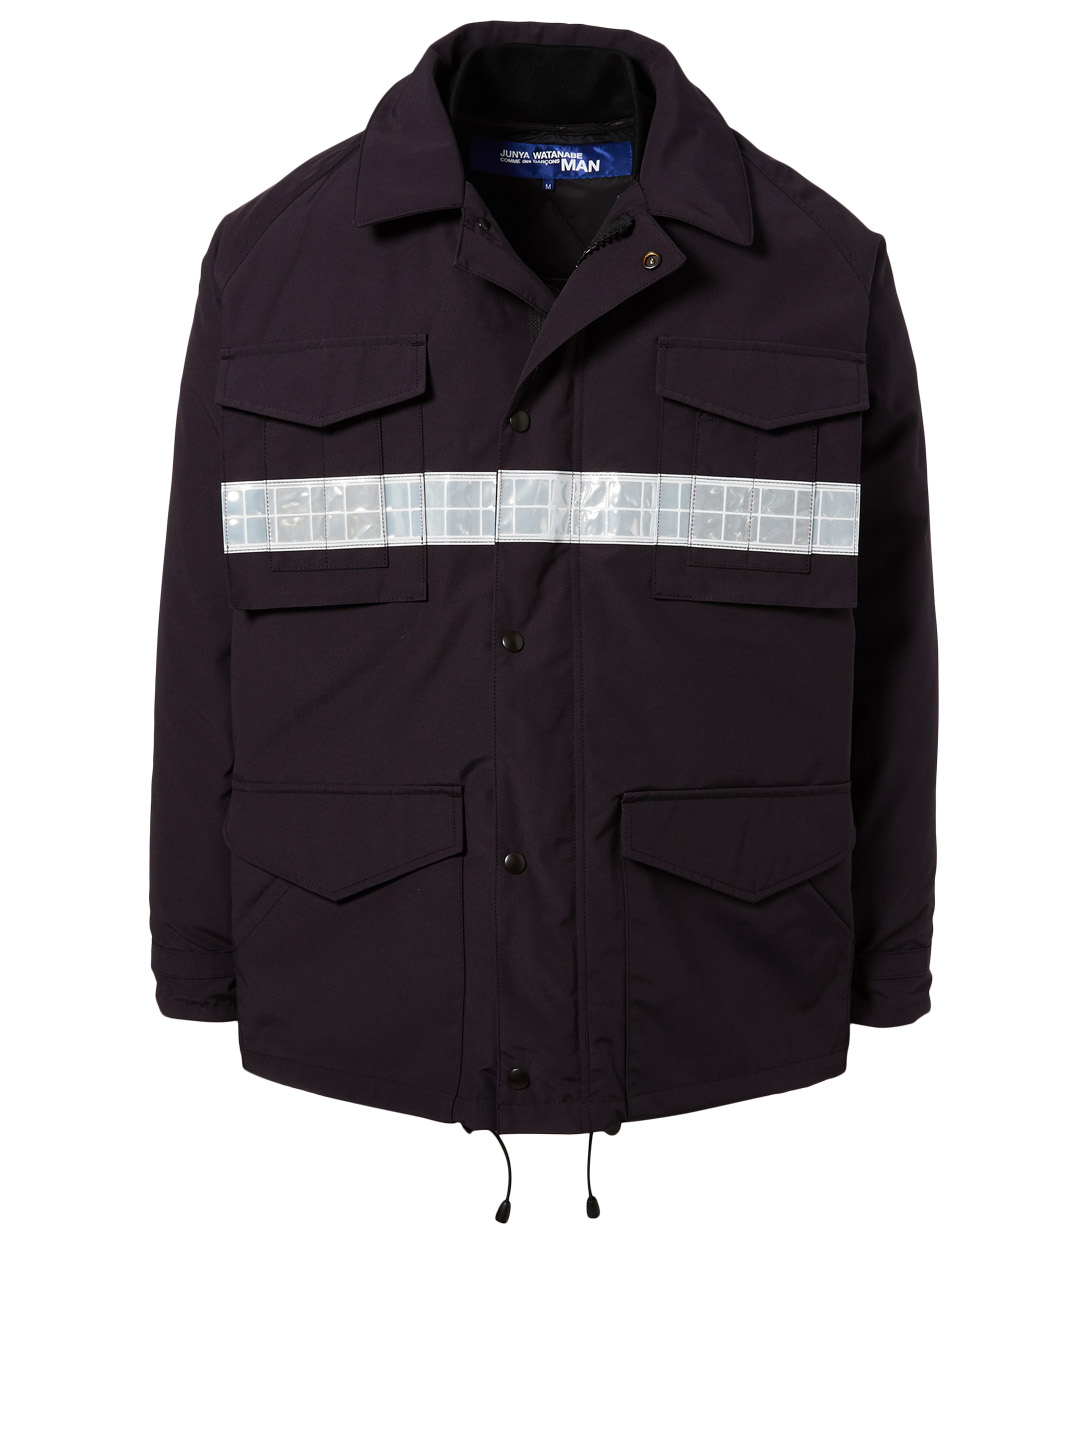 CDG JUNYA WATANABE Junya Watanabe x Canada Goose Down Jacket With Reflective Stripe Men's Blue